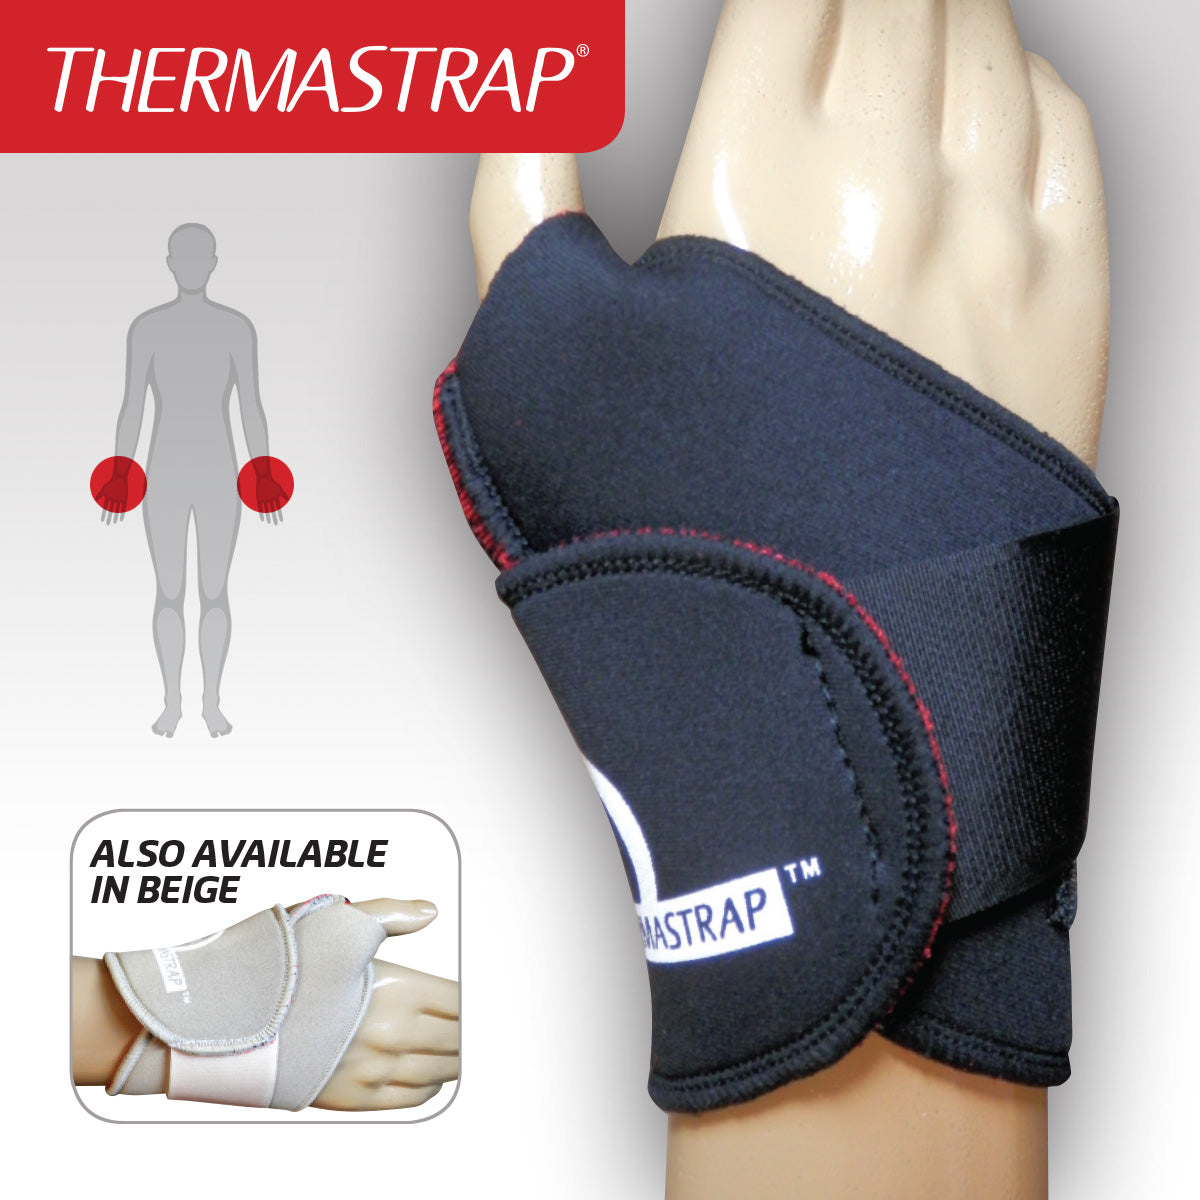 Thermastrap Thumb/Wrist Support